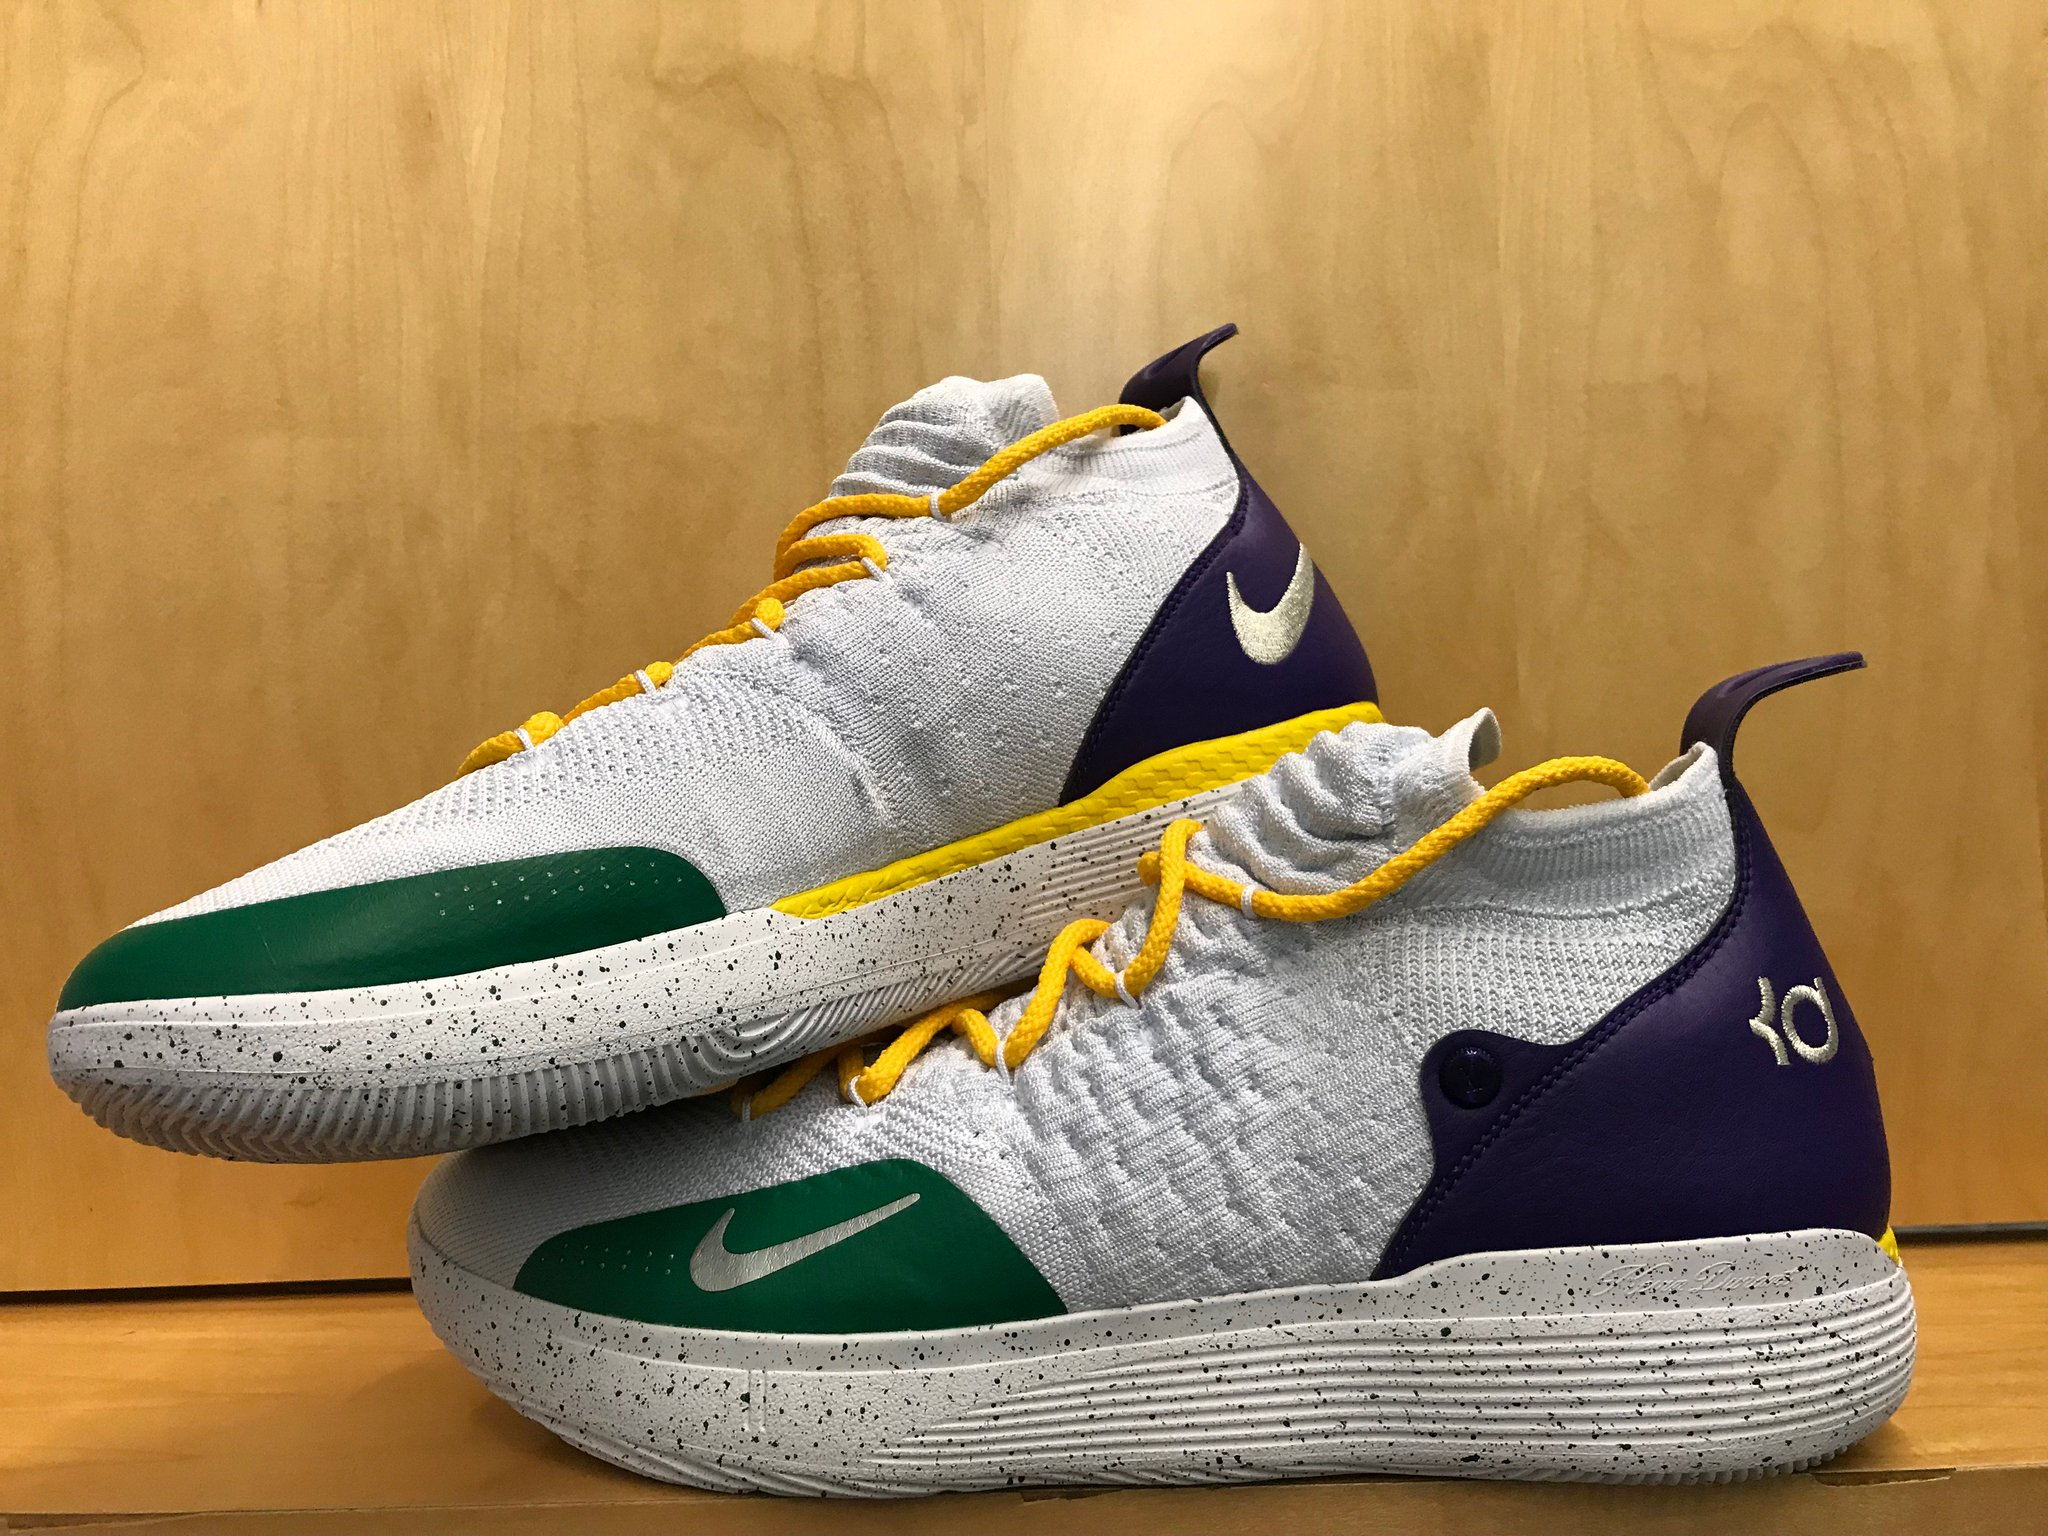 Tulane Green Wave NCAA Basketball: Oh, we've got some 🆕 @KDTrey5's to match the #MardiGras threads, too #RollWave.  Twe...